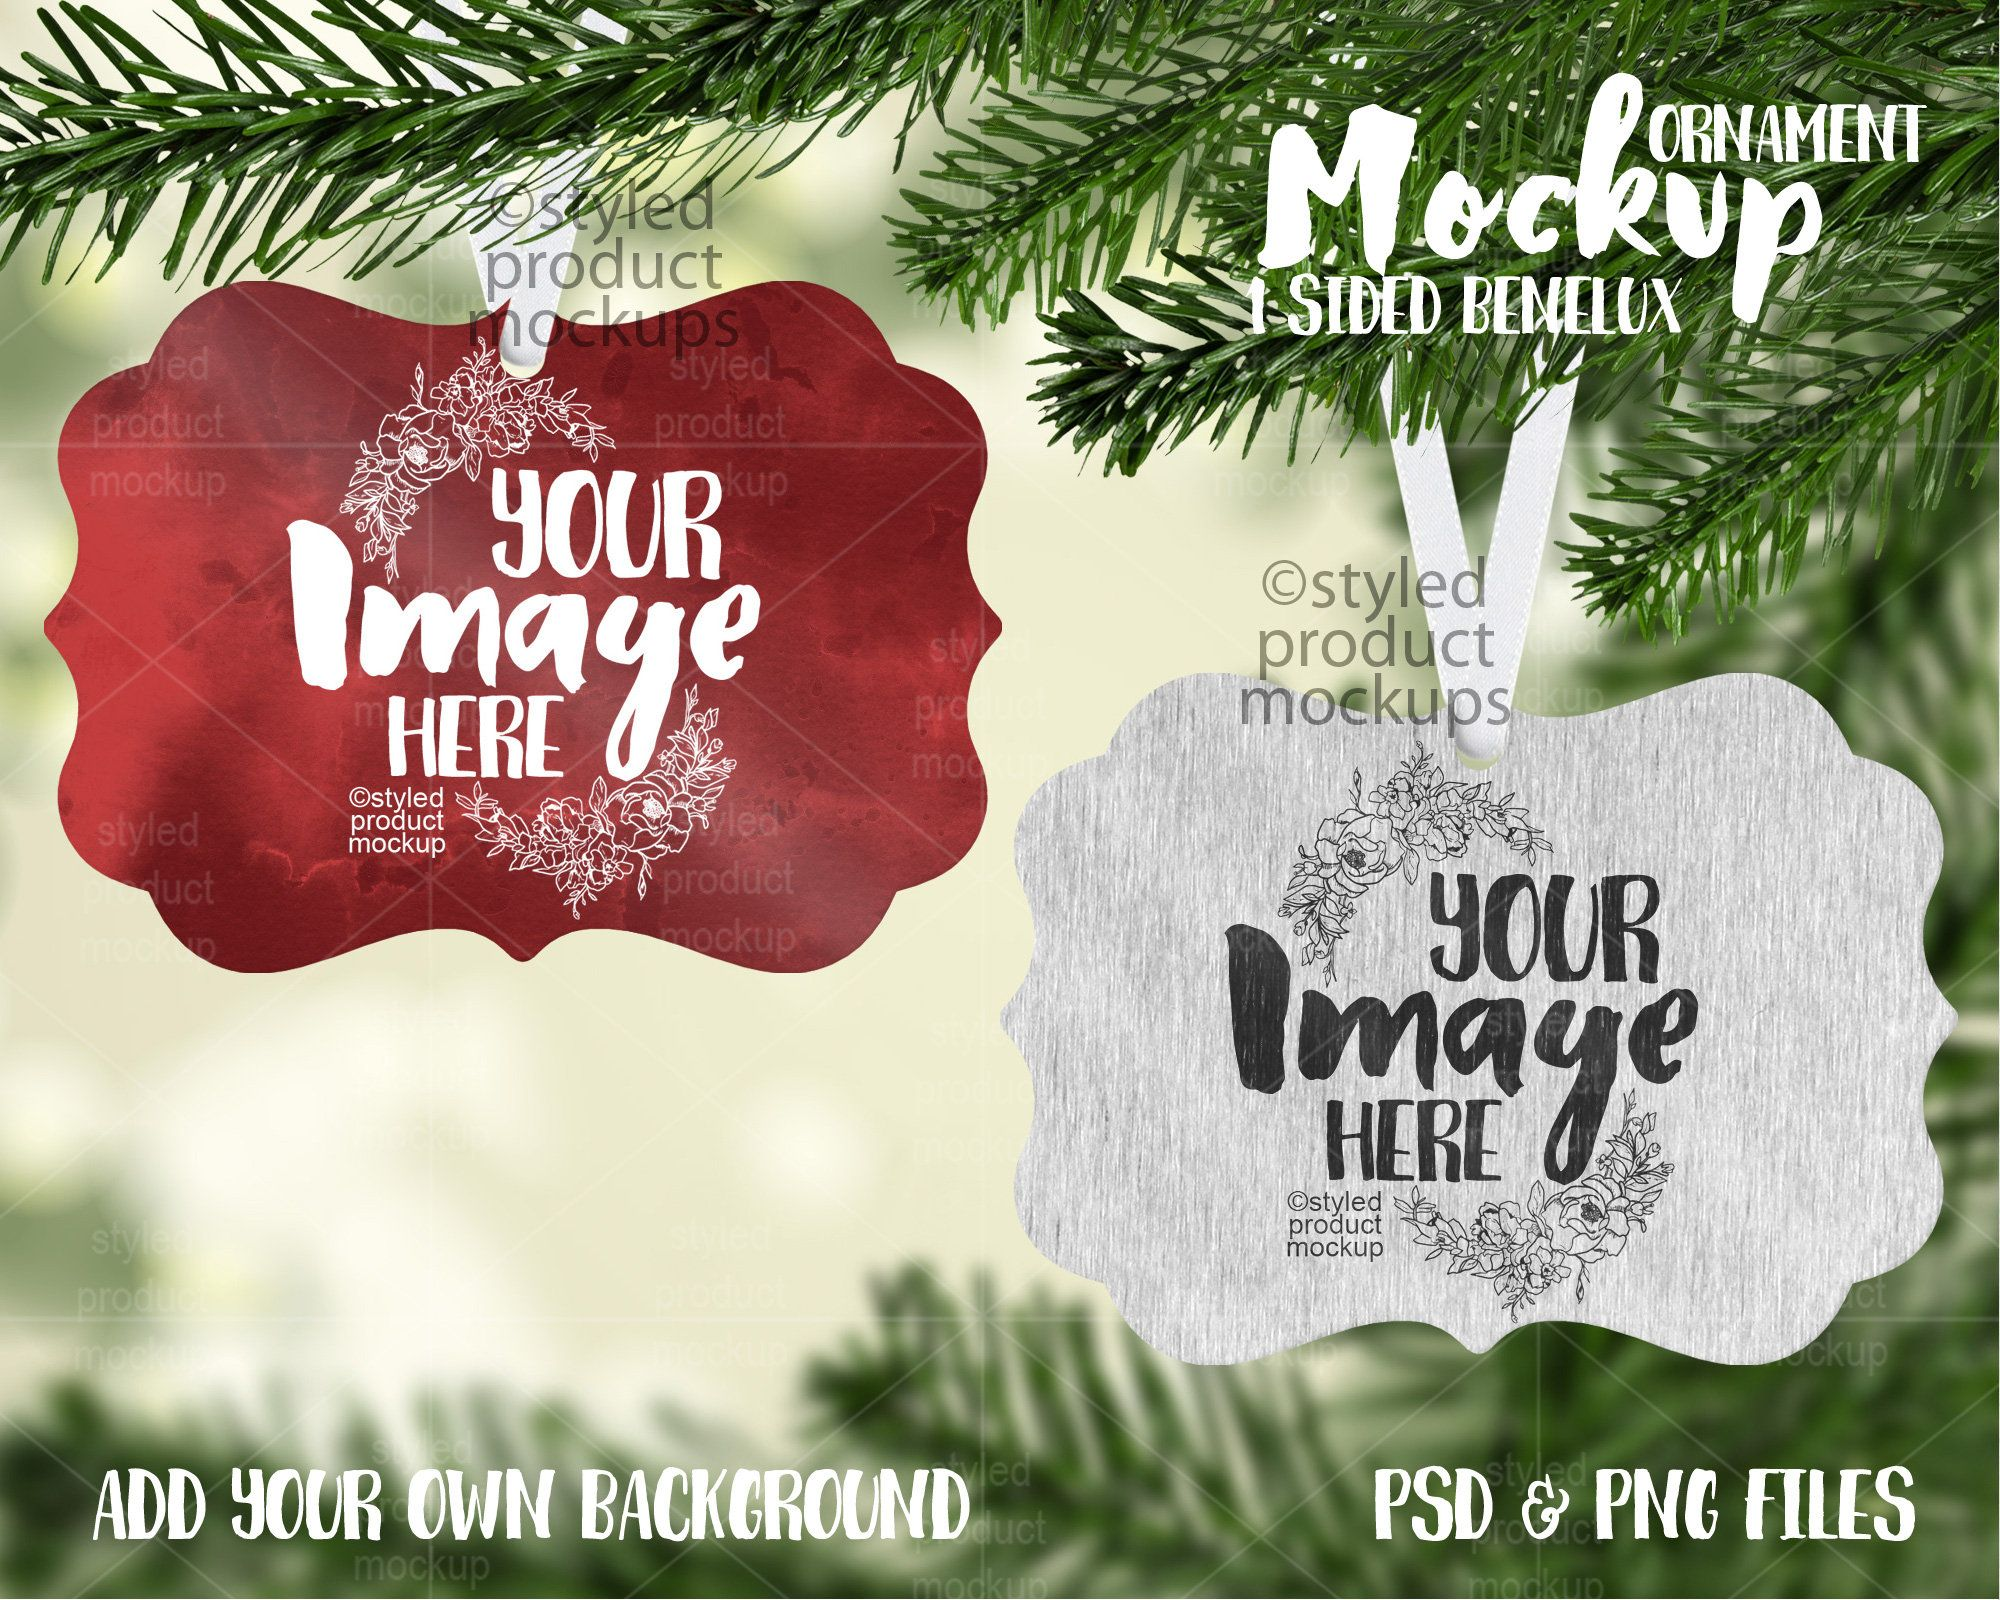 Dye Sublimation Benelux Shaped Ornament With One Side Metal Mockup Add Your Own Image And Backgrou Christmas Tree Background Dye Sublimation Ornaments Design